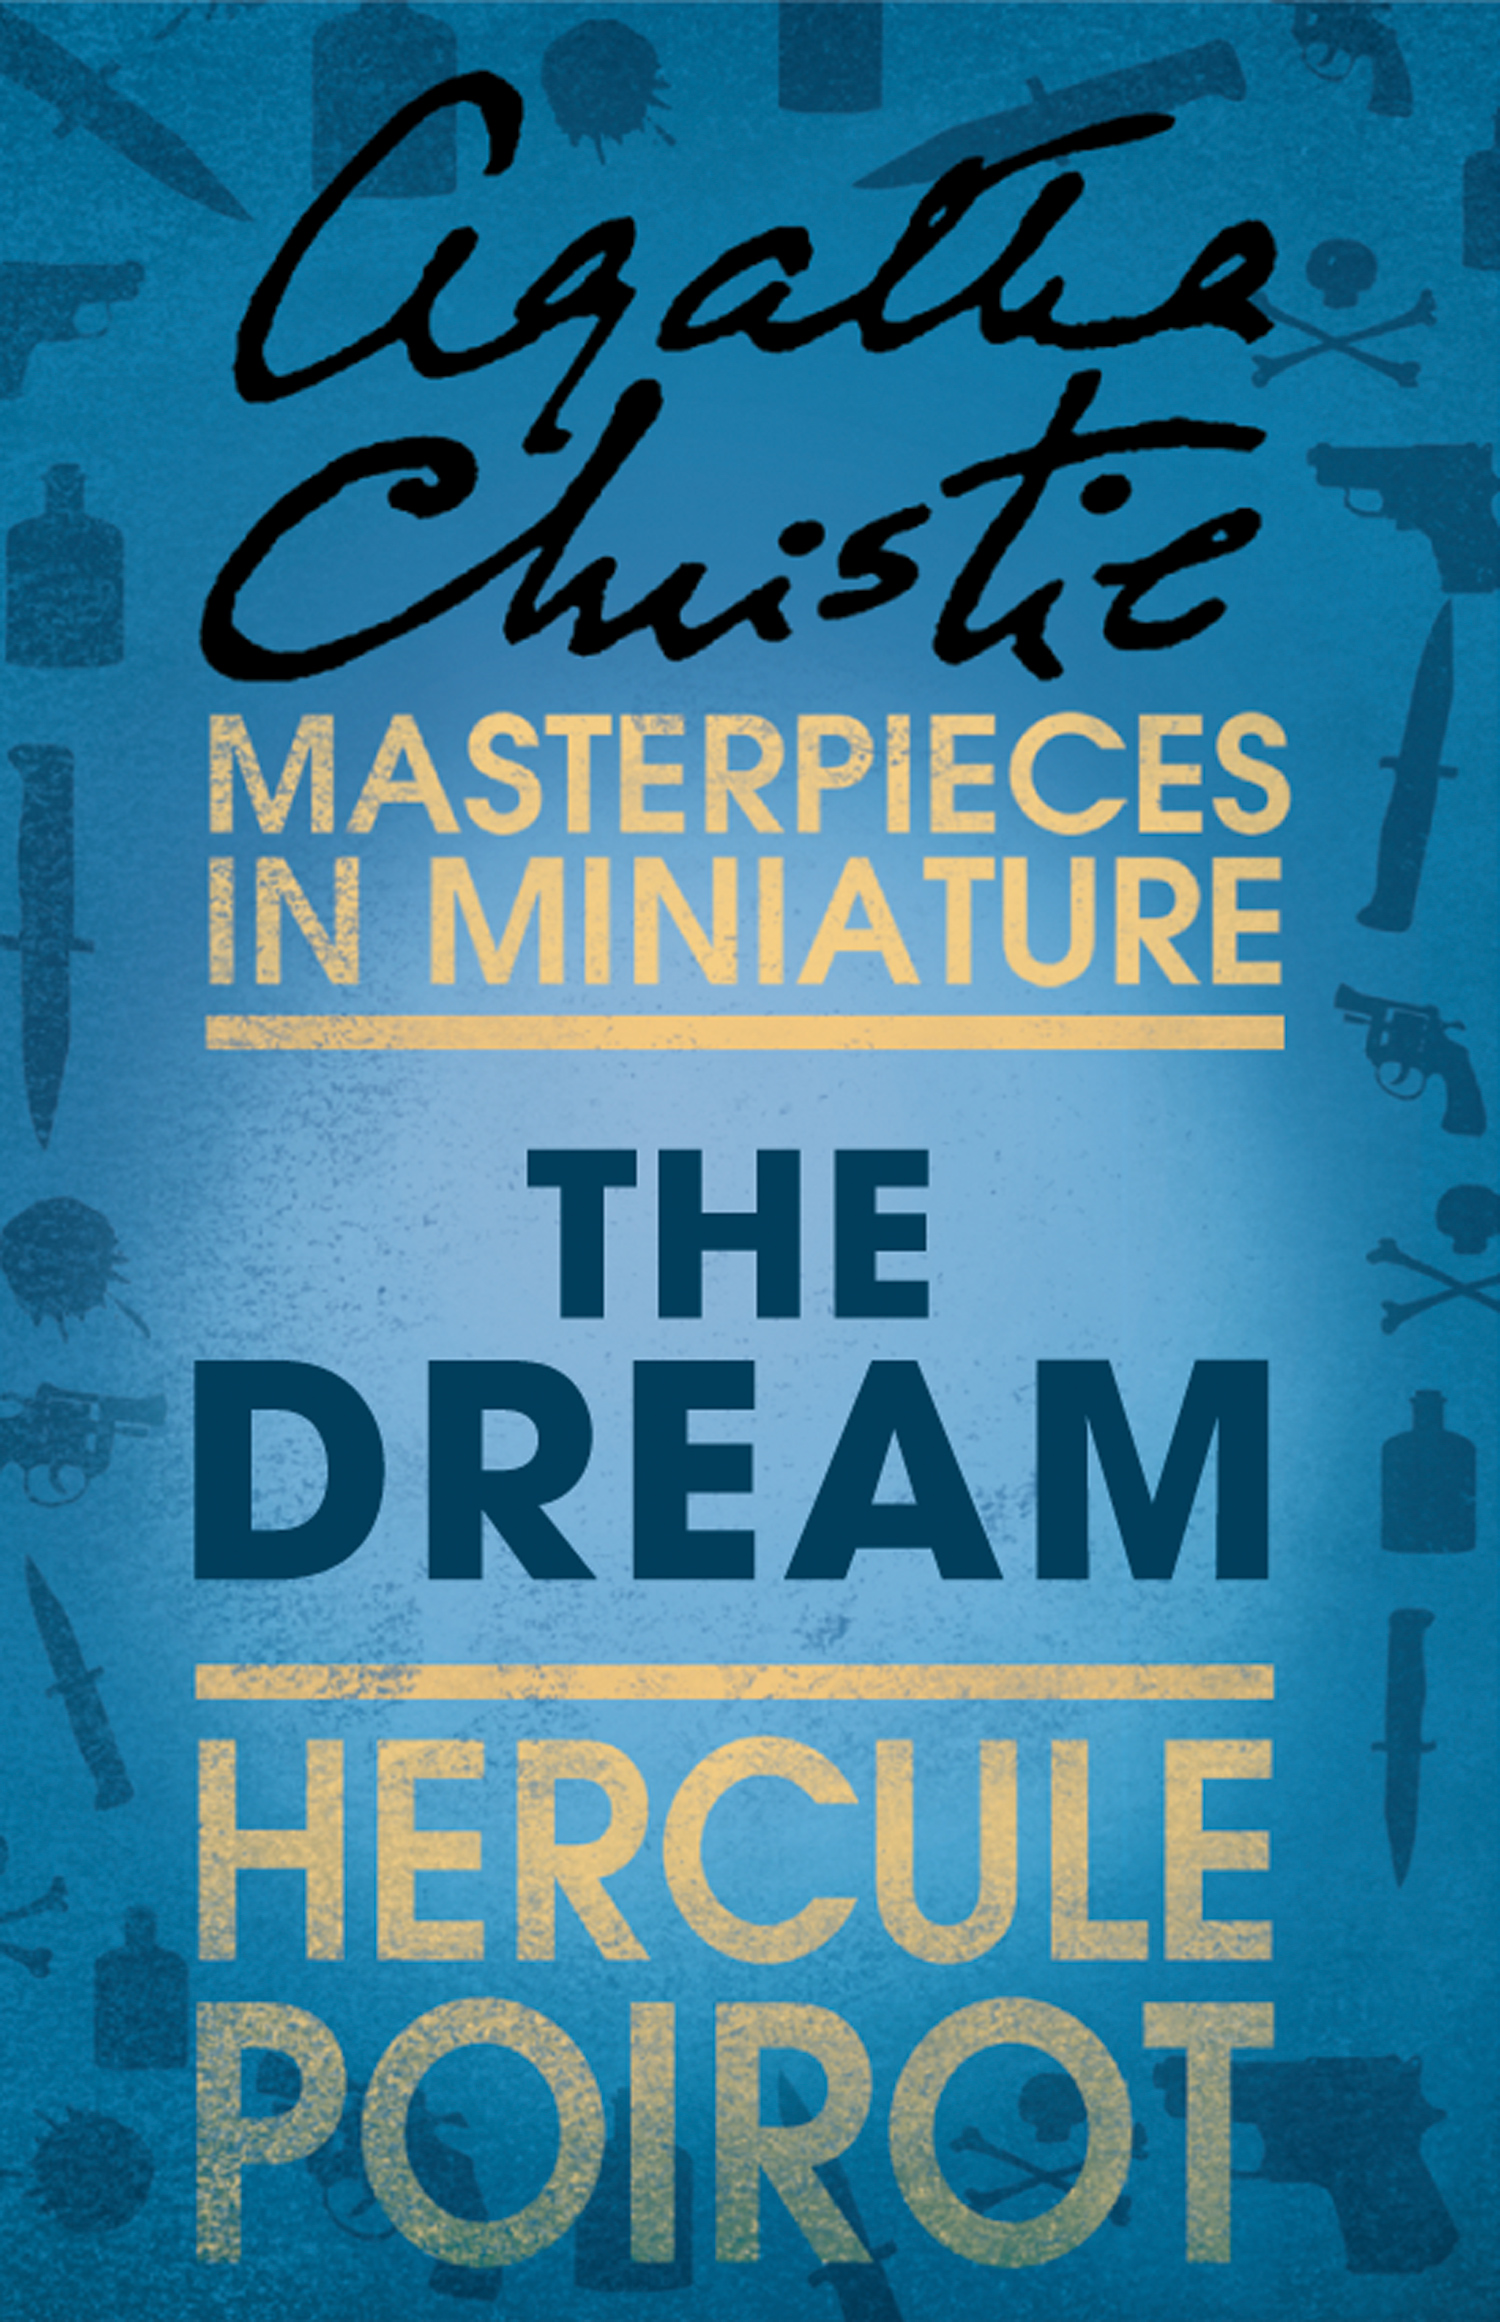 The Dream: A Hercule Poirot Short Story